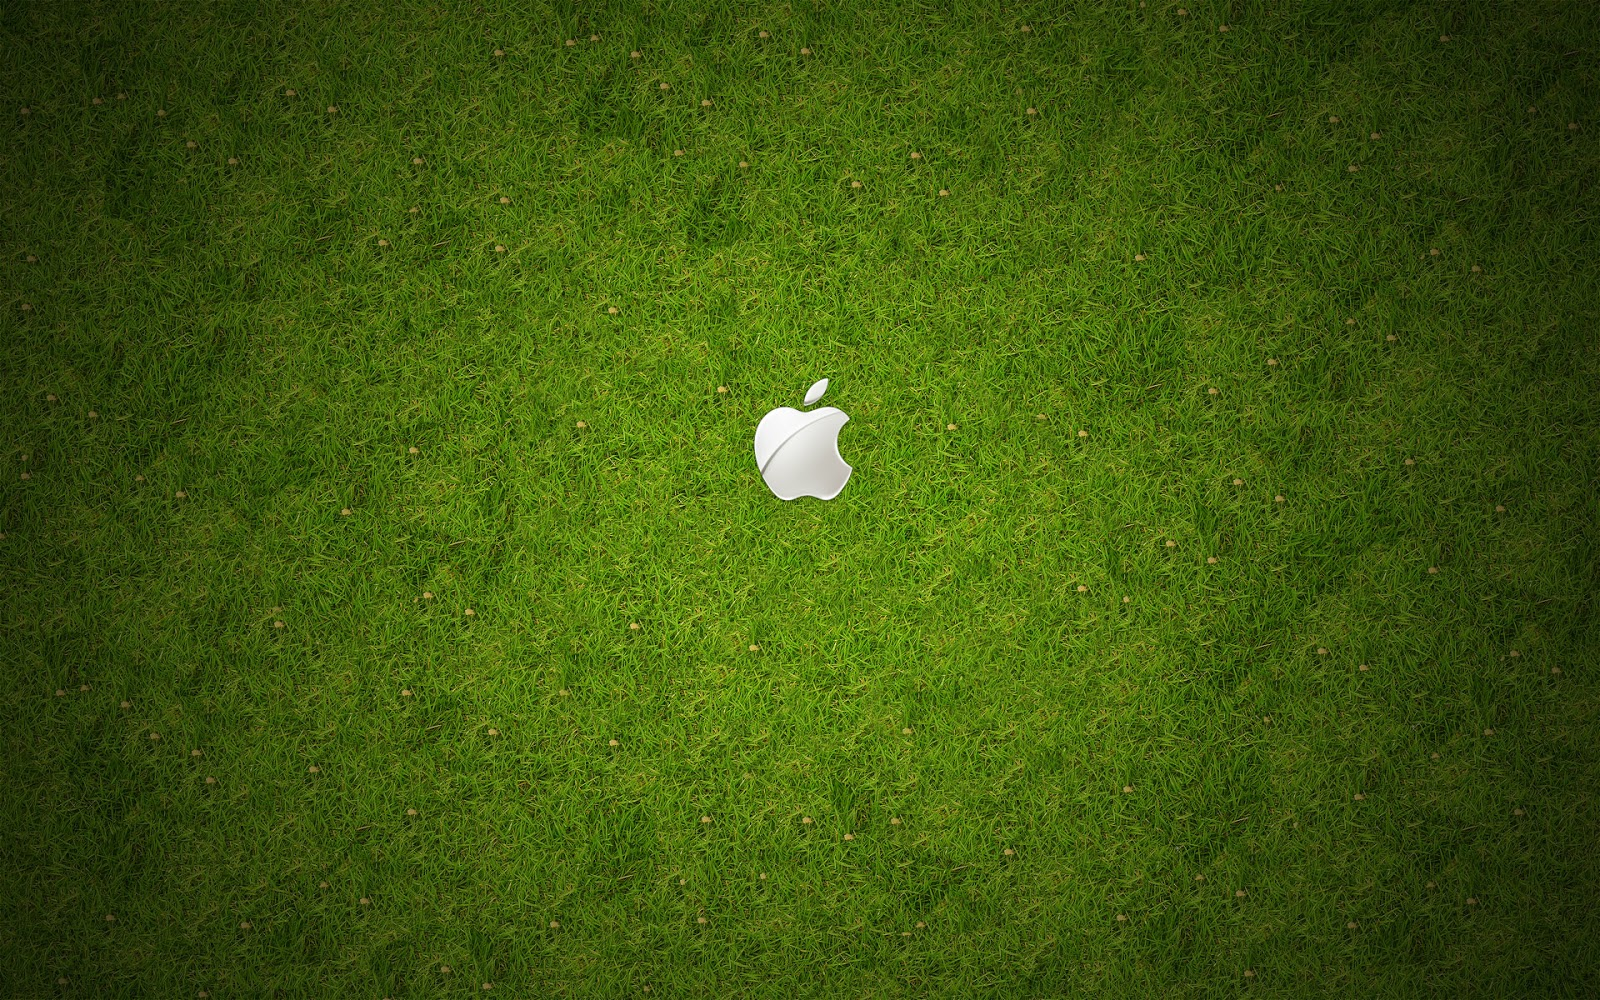 HD Apple Mac Backgrounds Wallpaper 1600x1000